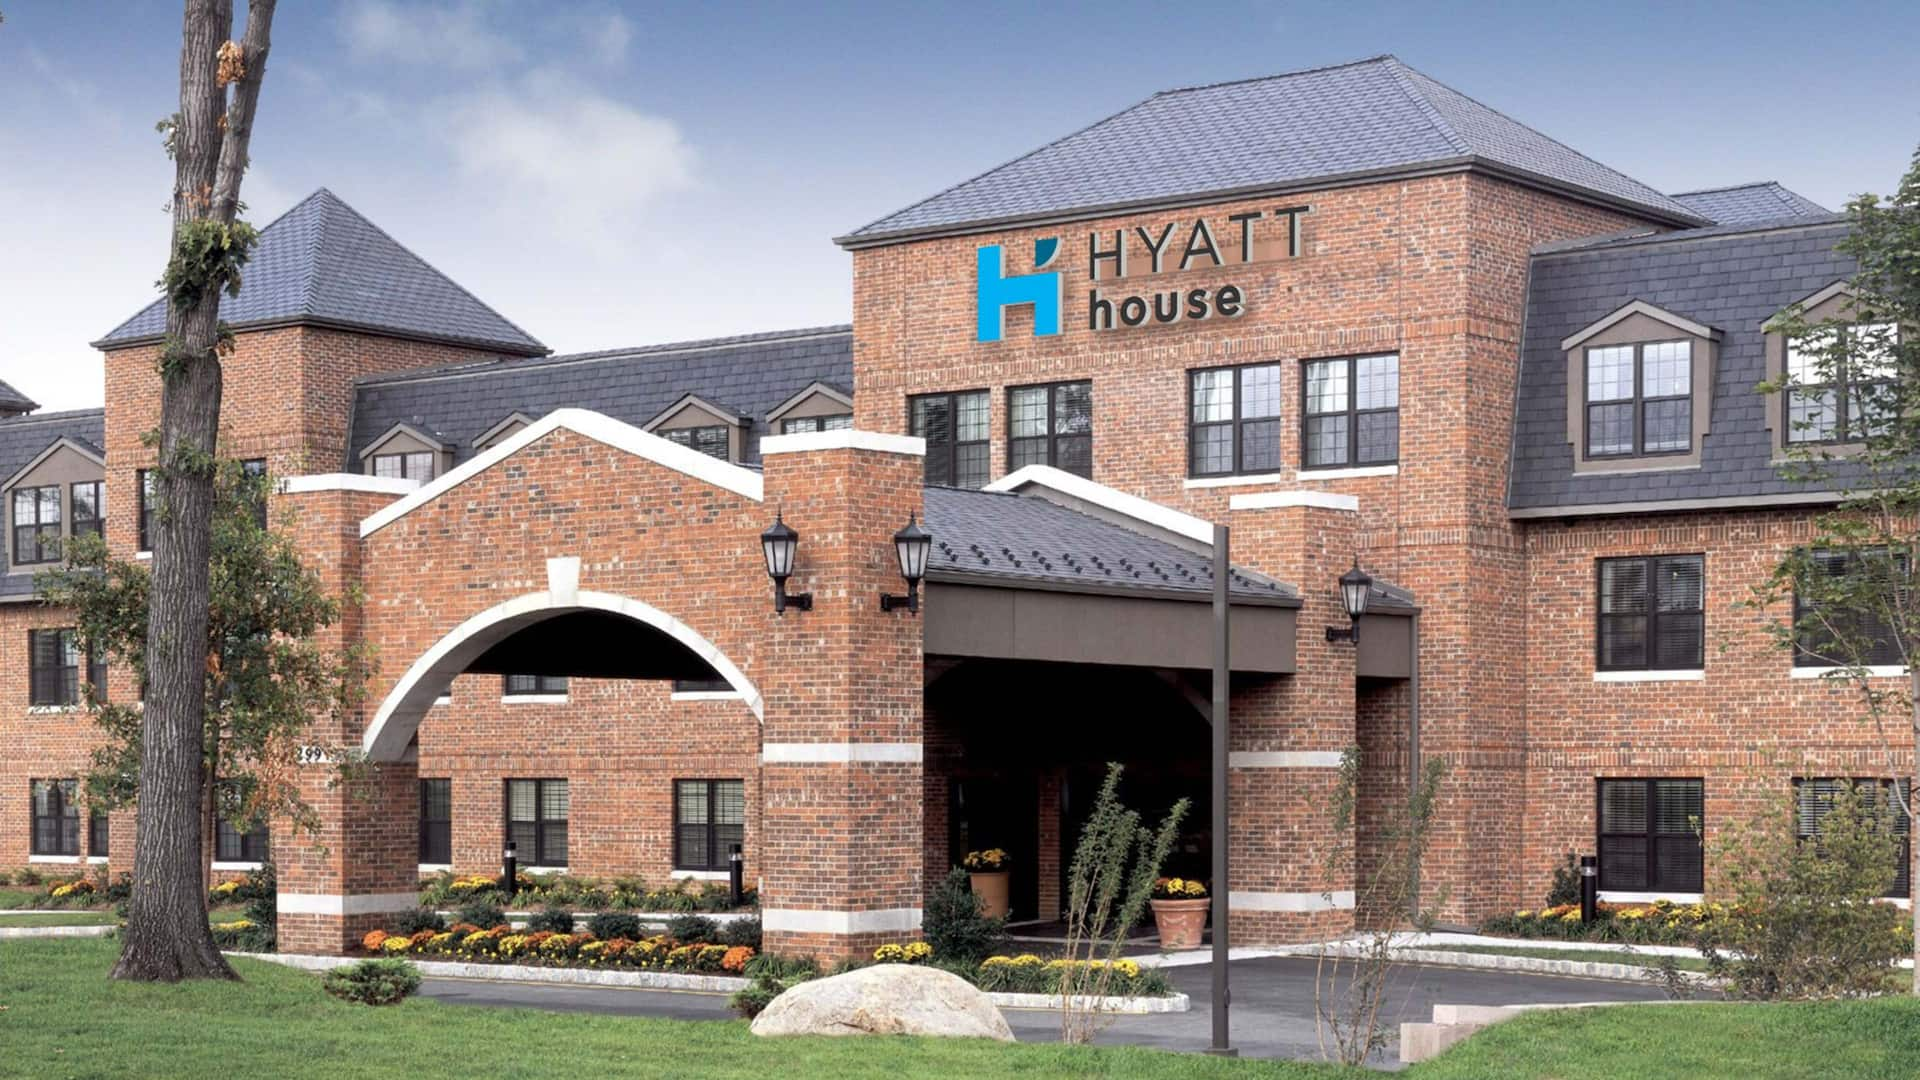 Hyatt House Exterior In Parsippany, New Jersey